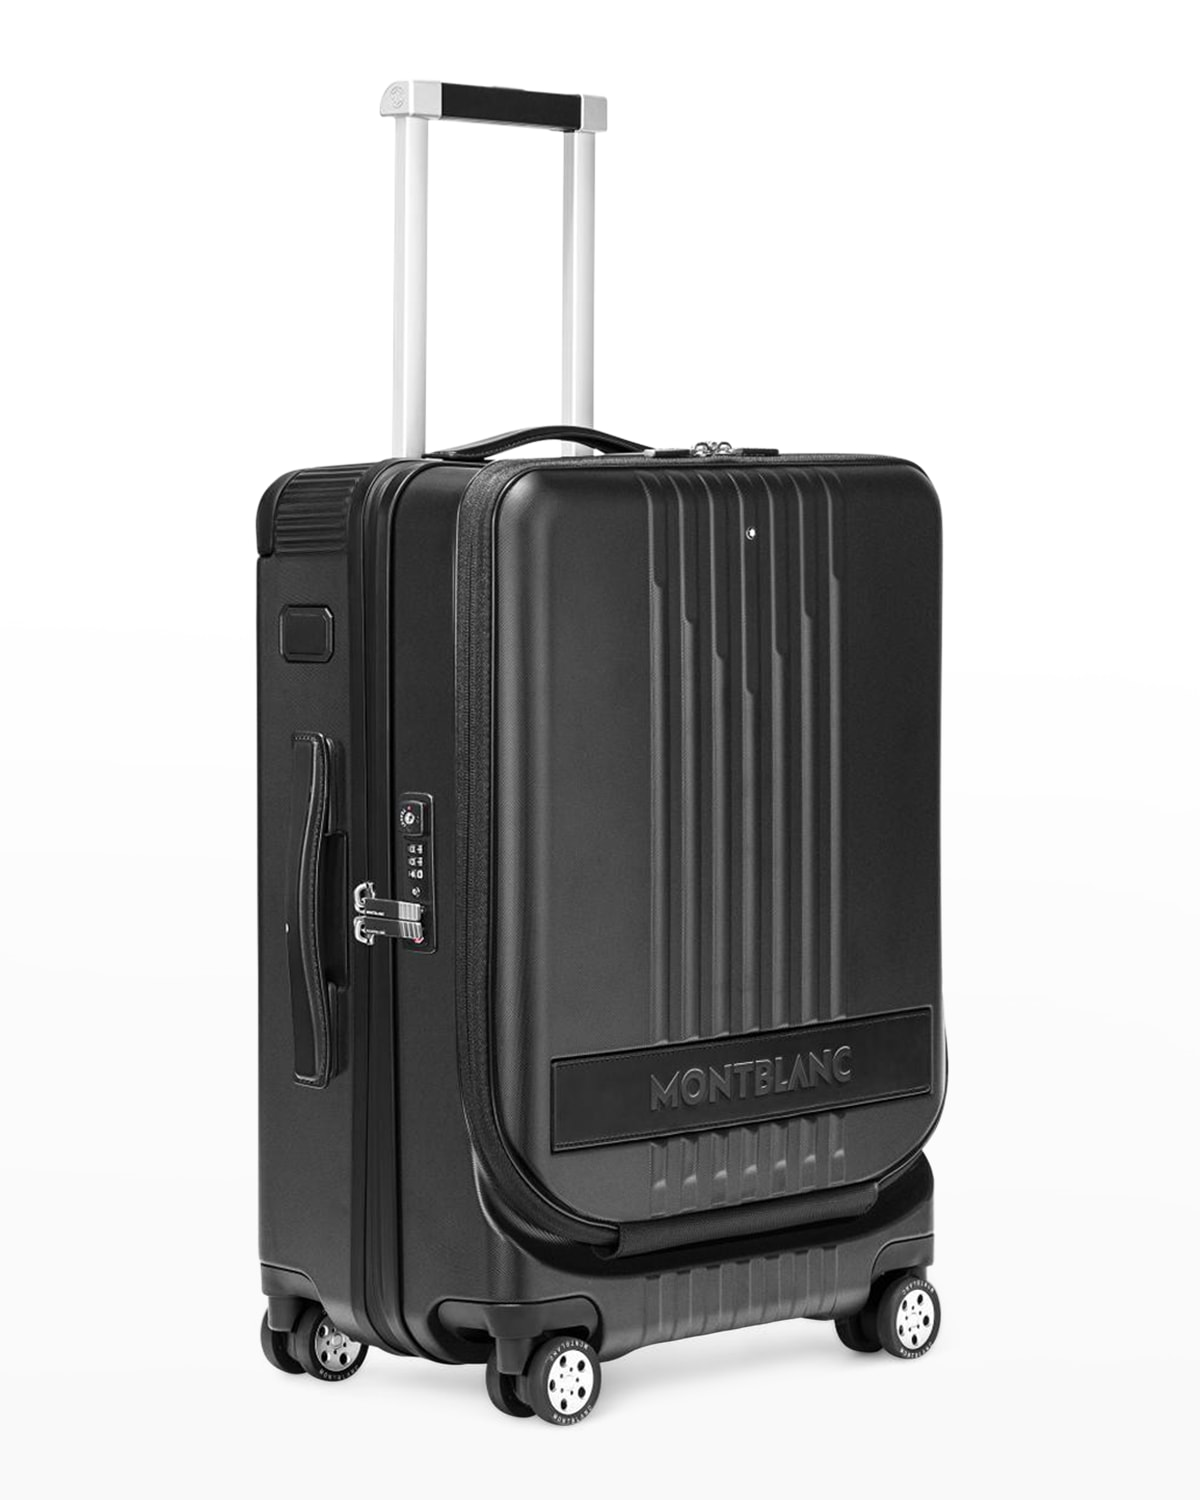 MY4810 Trolley Cabin Luggage with Pocket